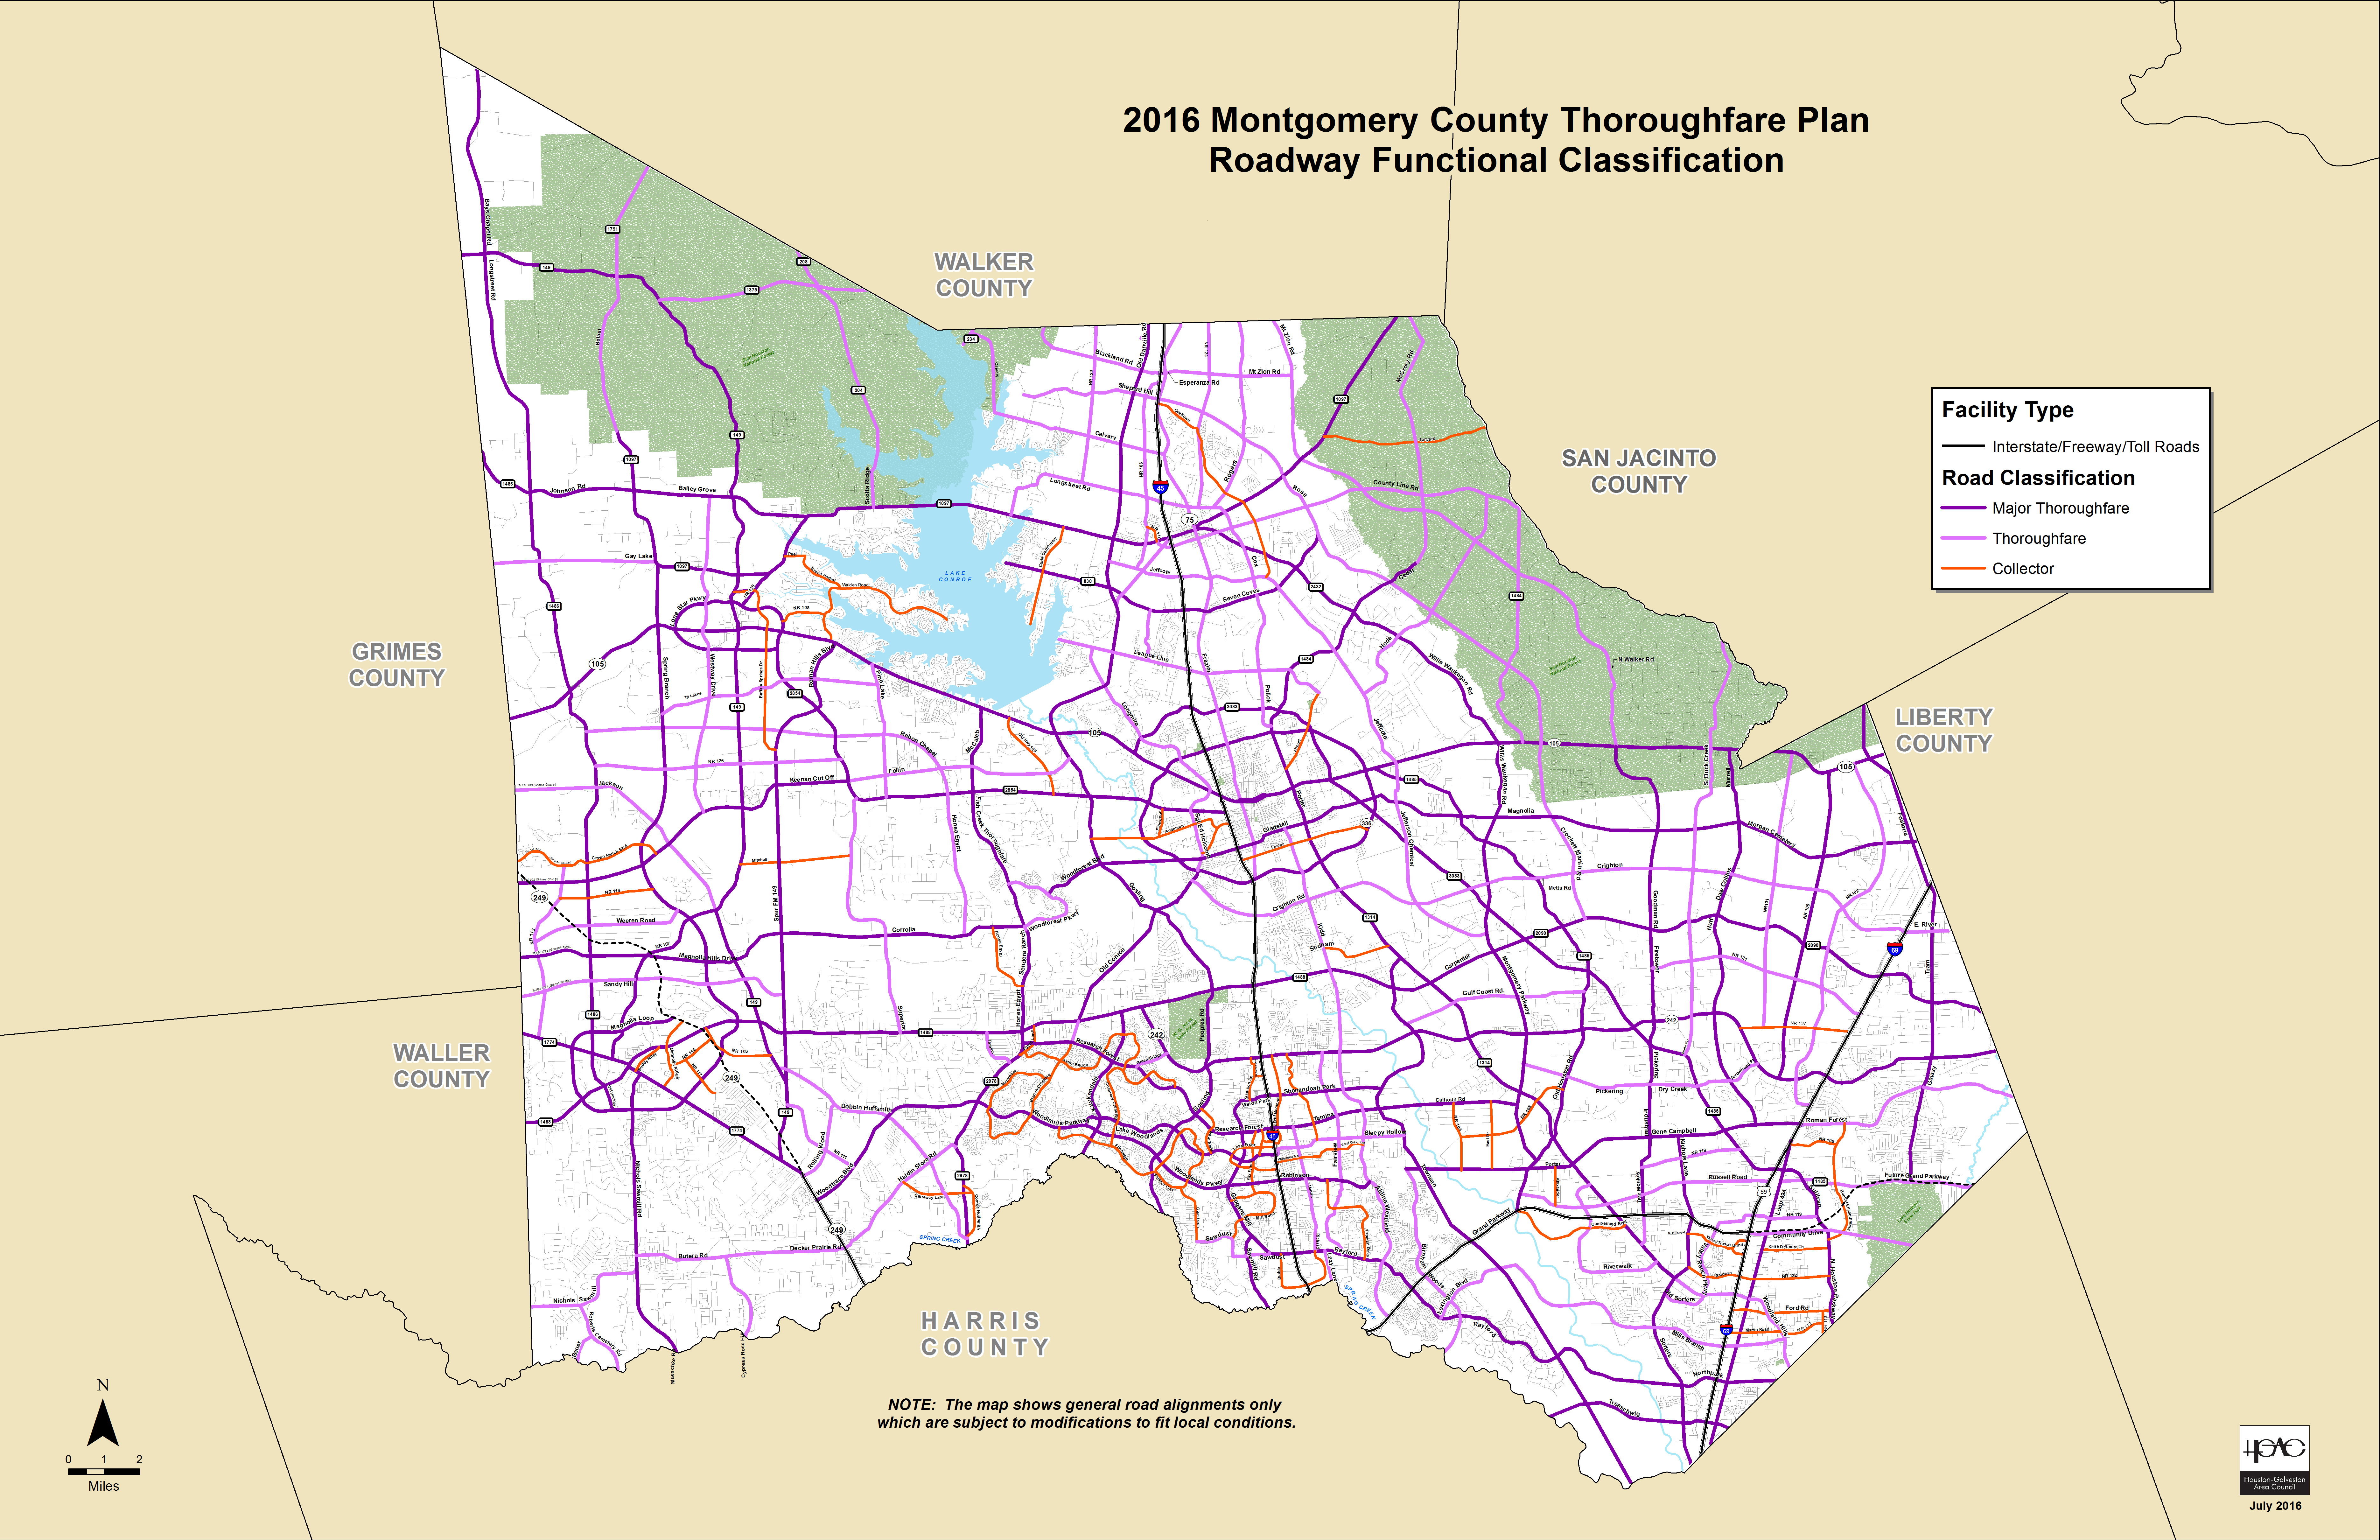 Fema Floodplain Maps Dfirm Federal Emergency Management Agency - New Caney Texas Map